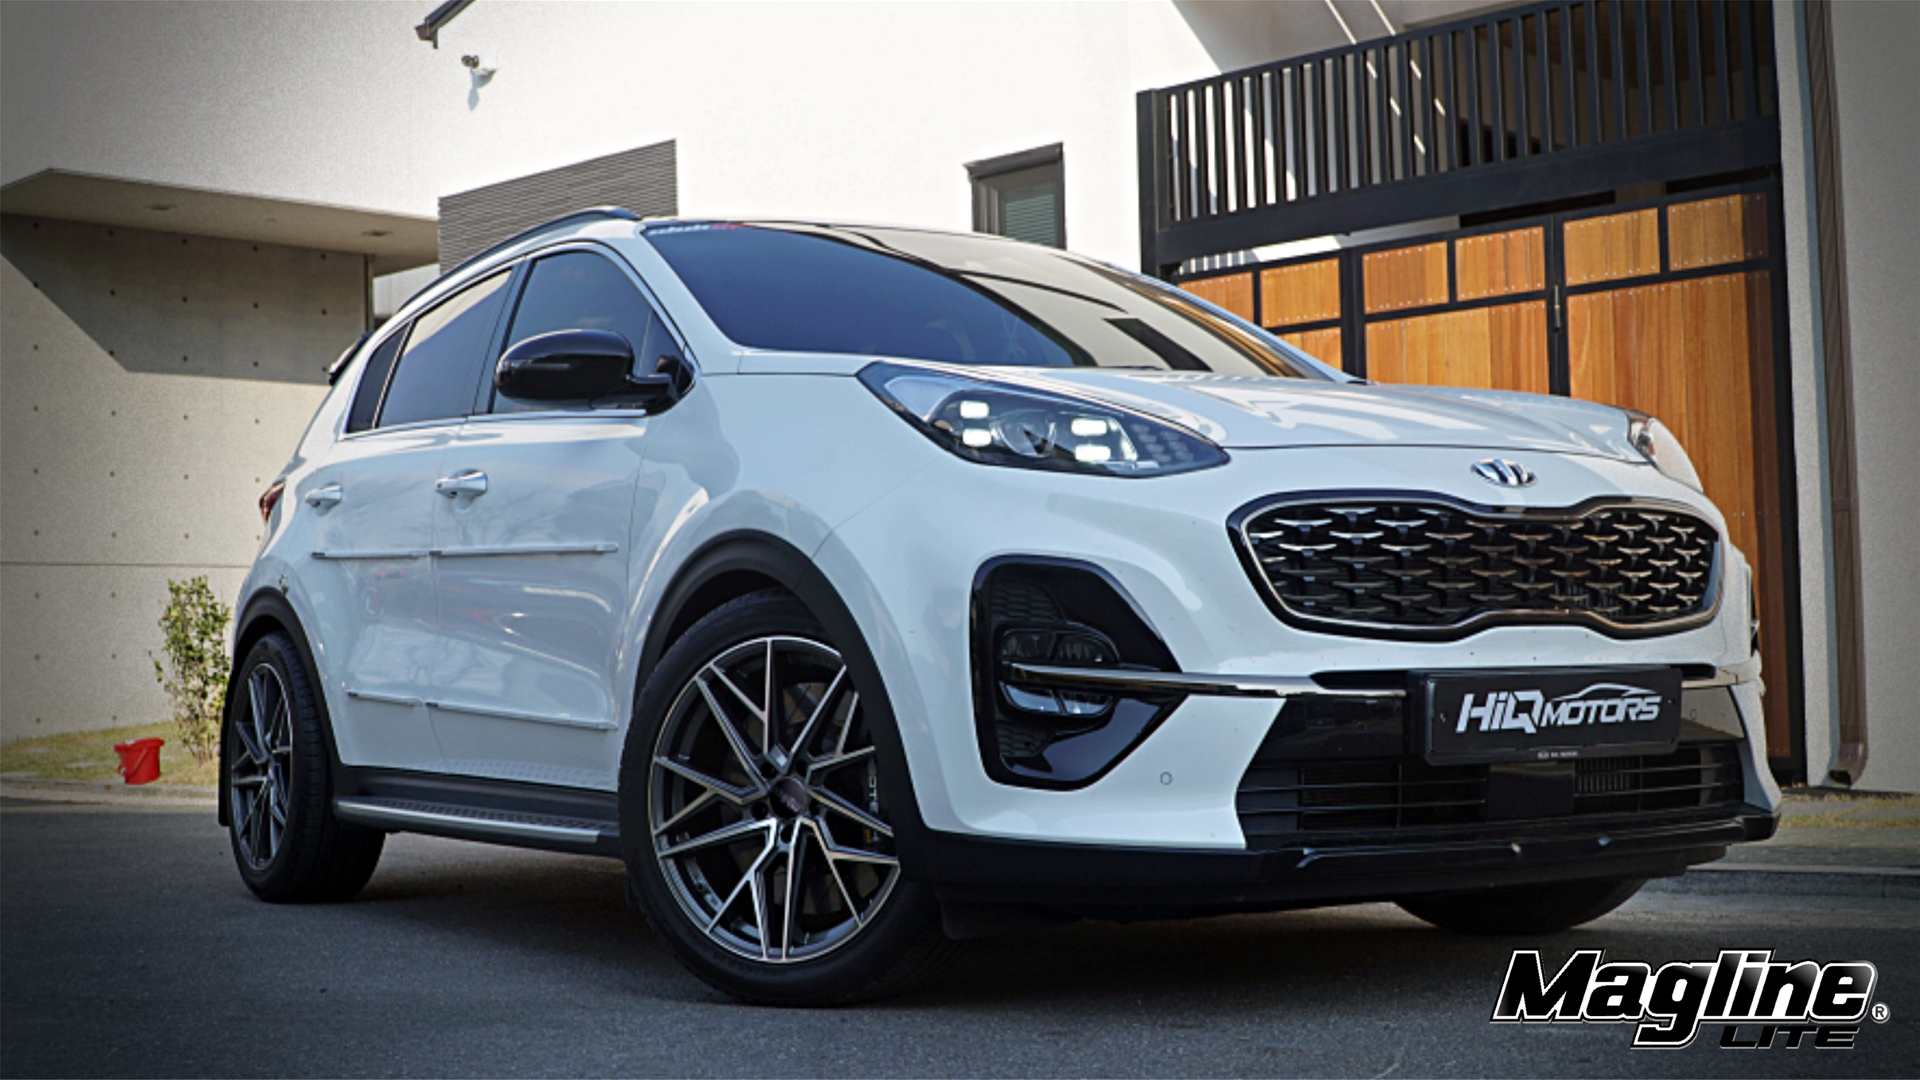 H-811L fitted with KIA Sportage